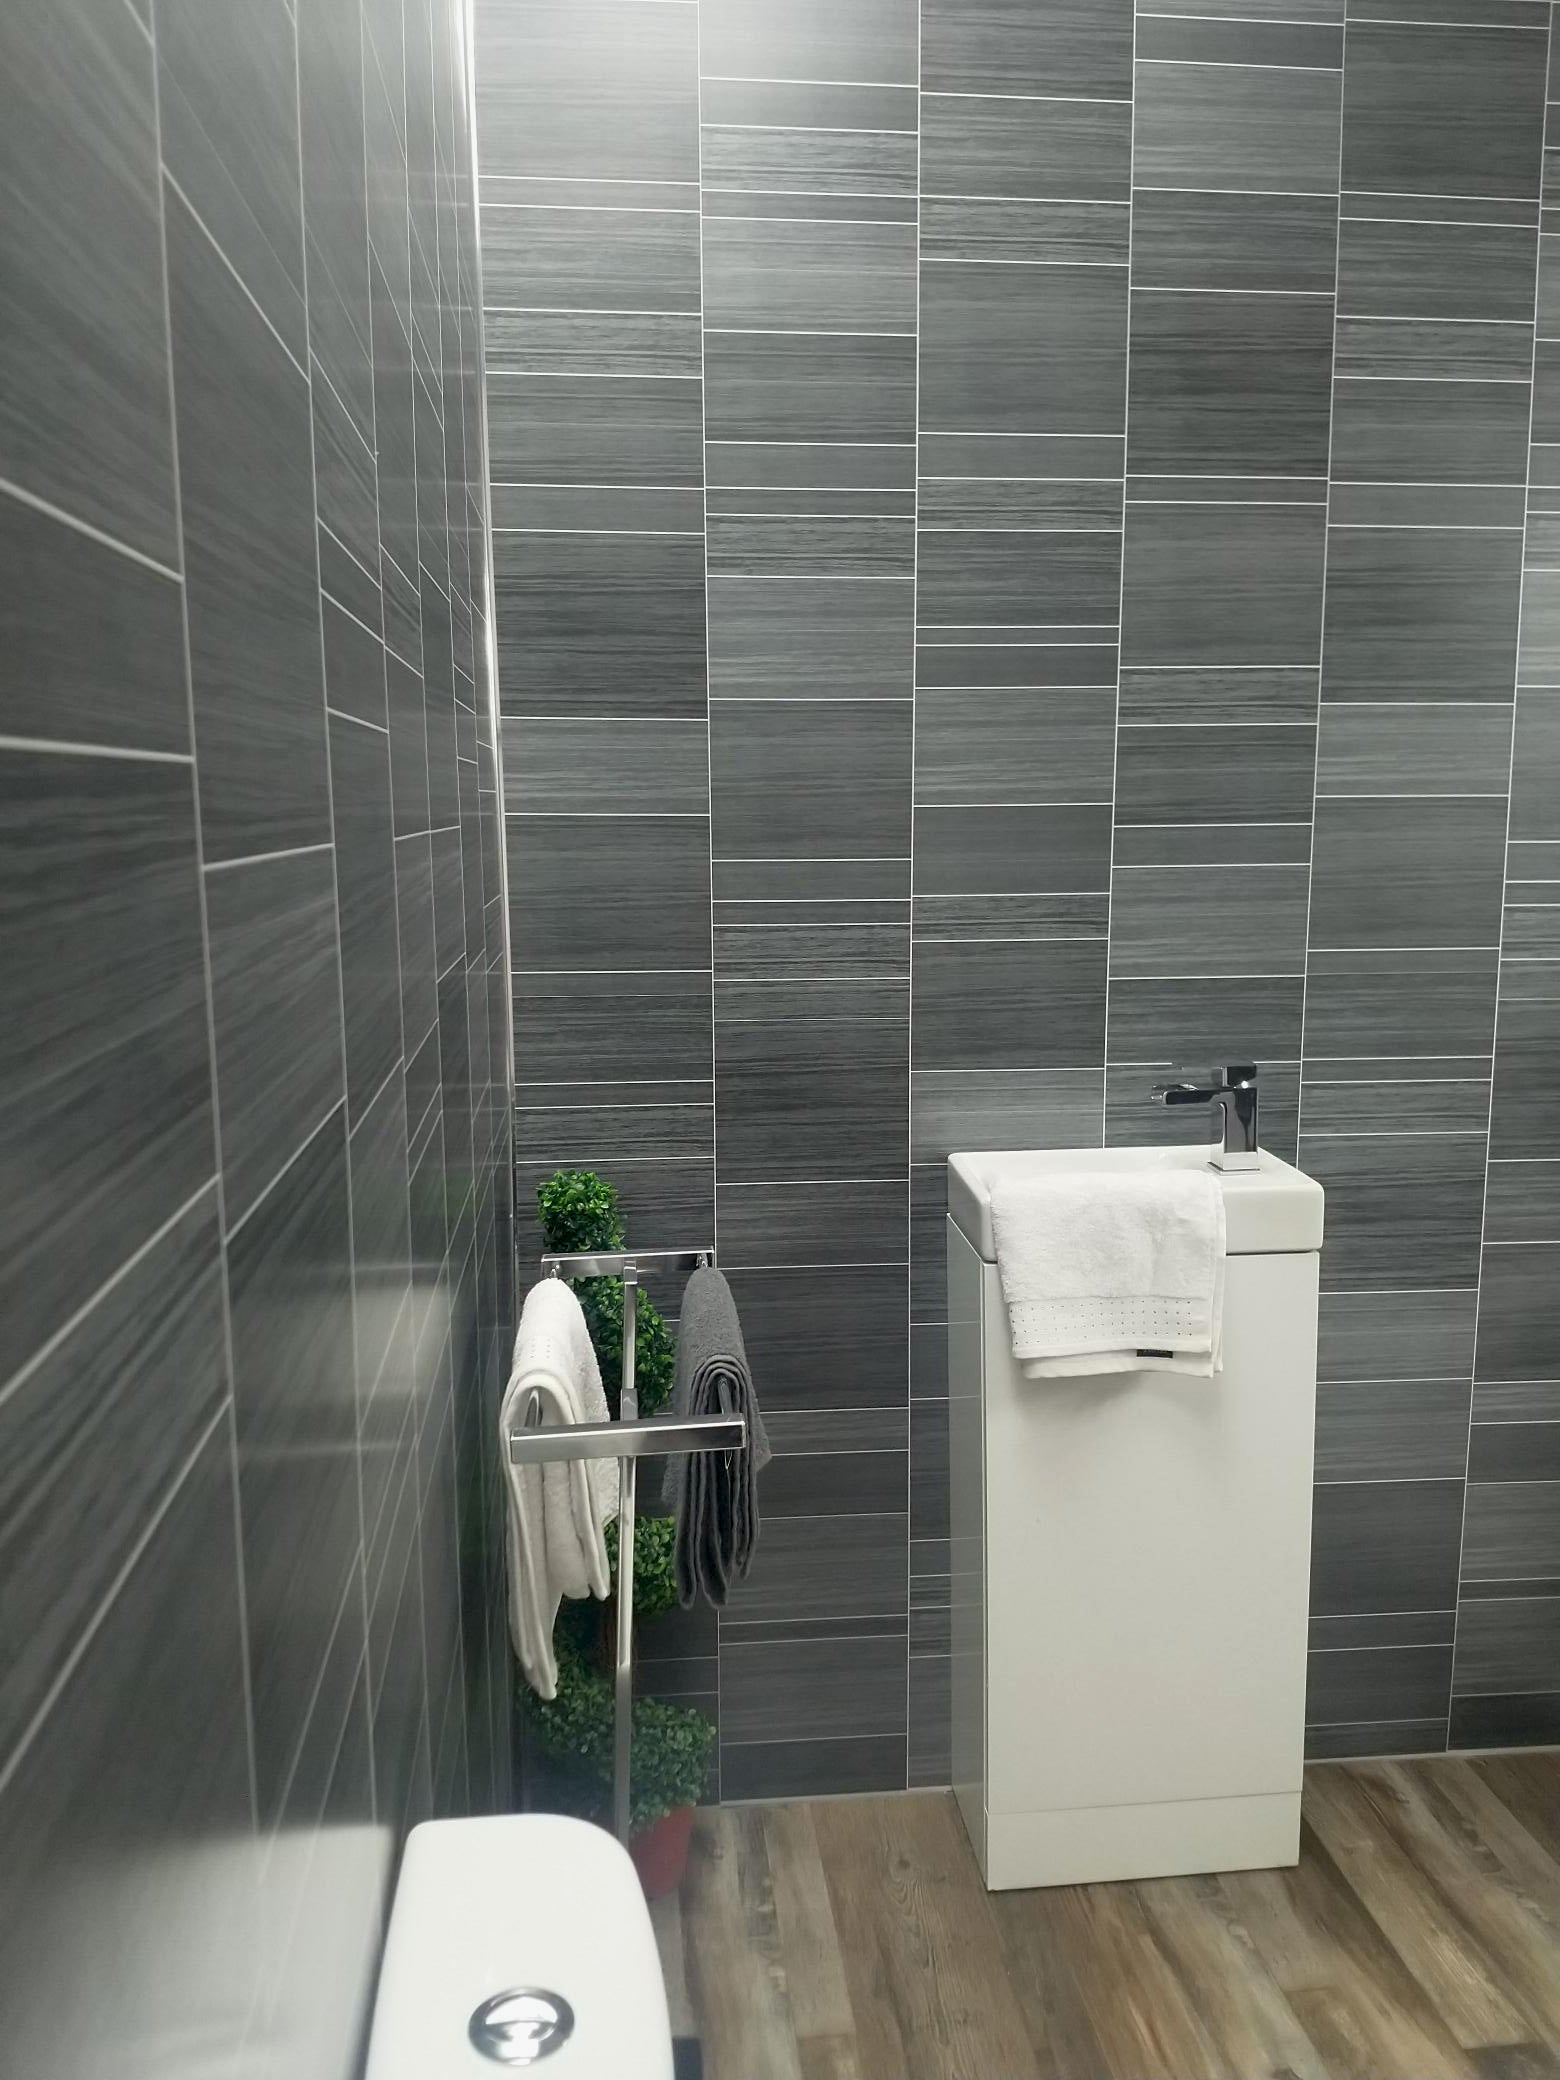 executive small tile 8mm wall panels for bathrooms pvc